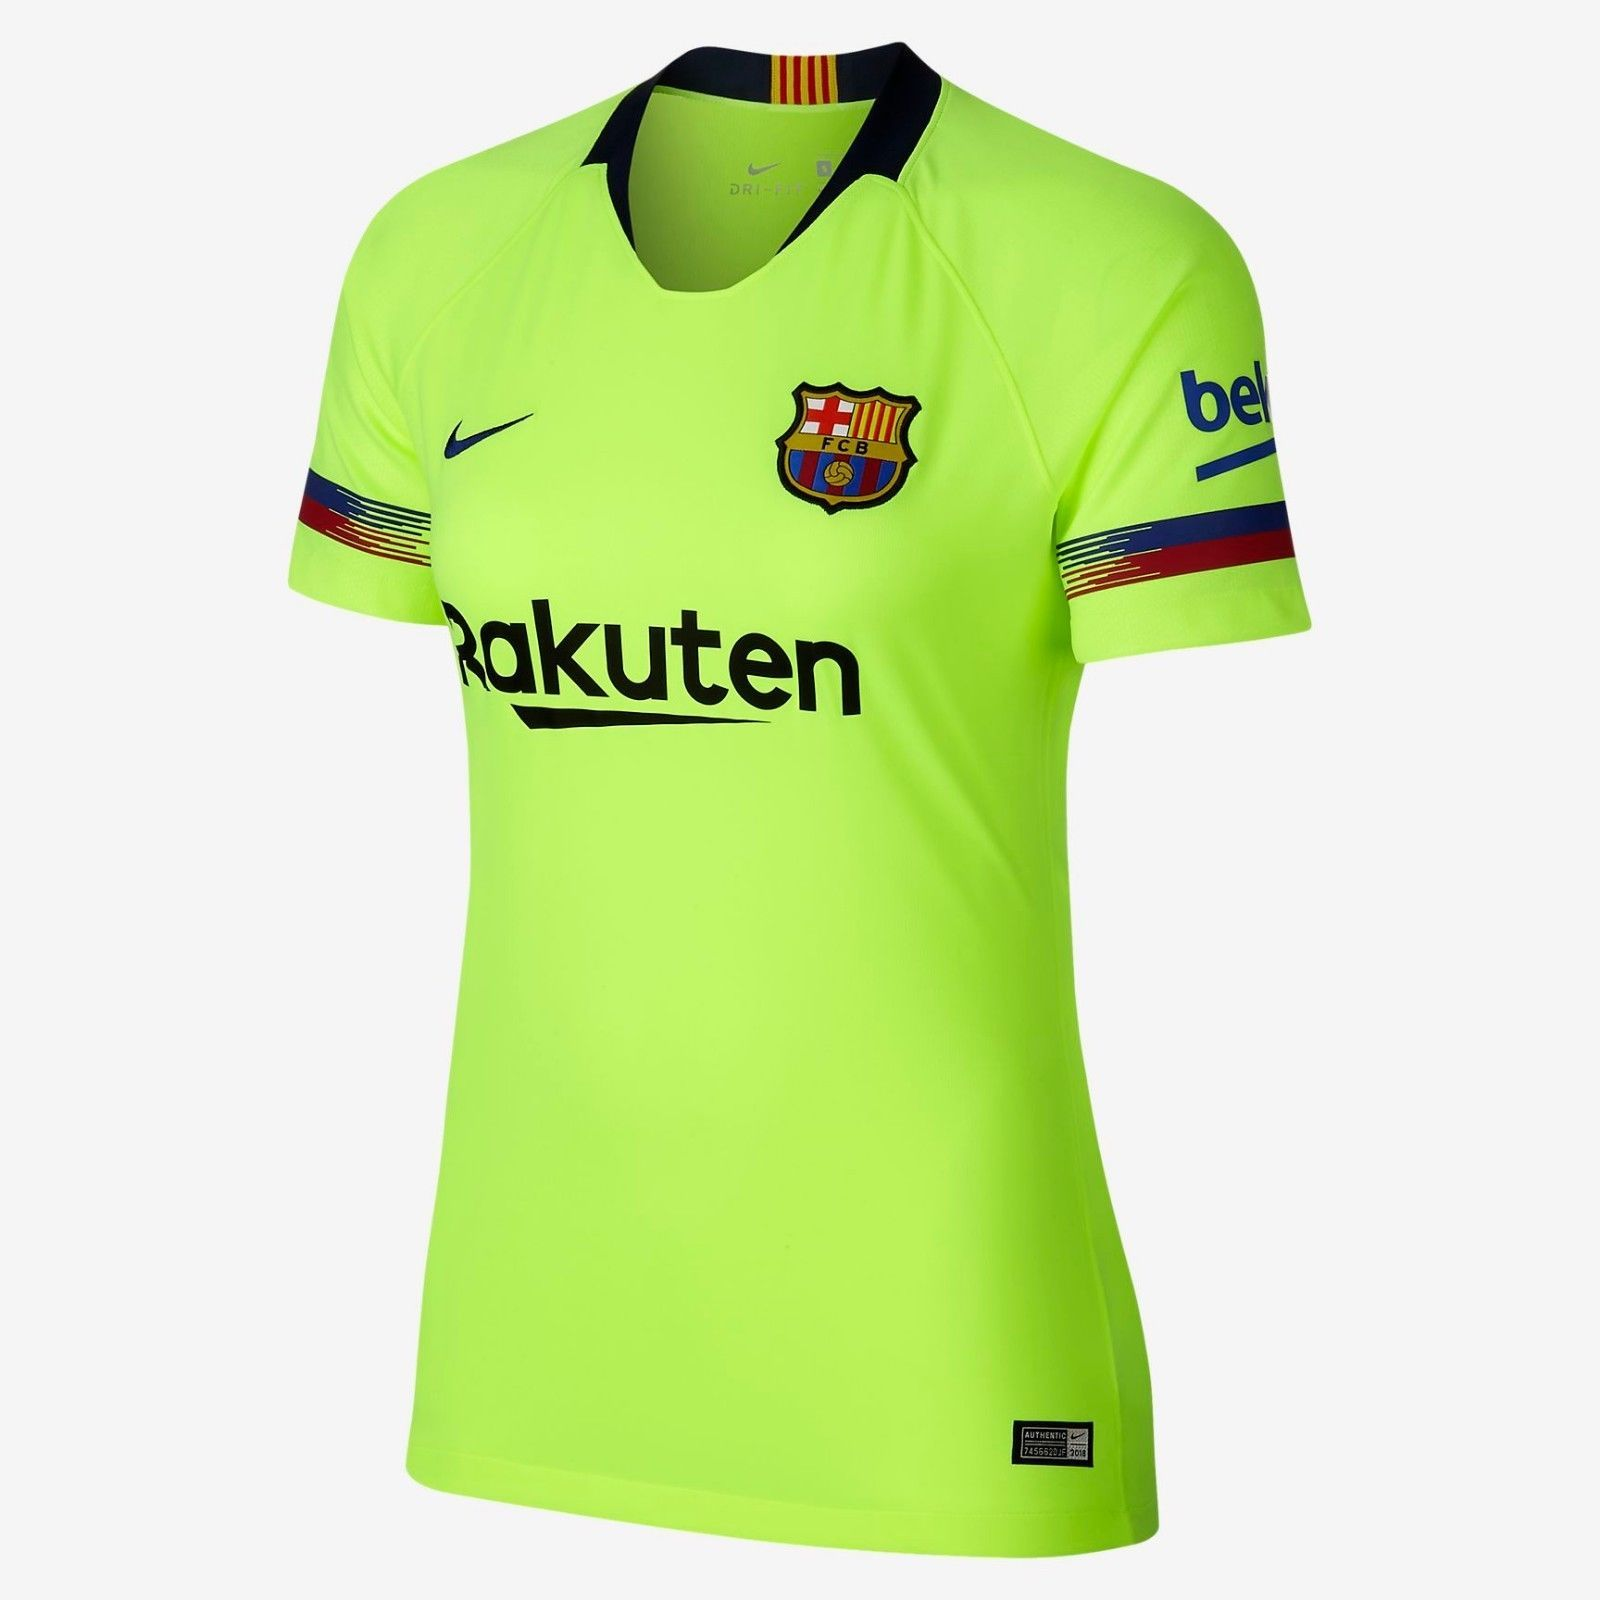 Nike Fc Barcelona Women s Away Jersey and 50 similar items. 57 8955e0345fef7